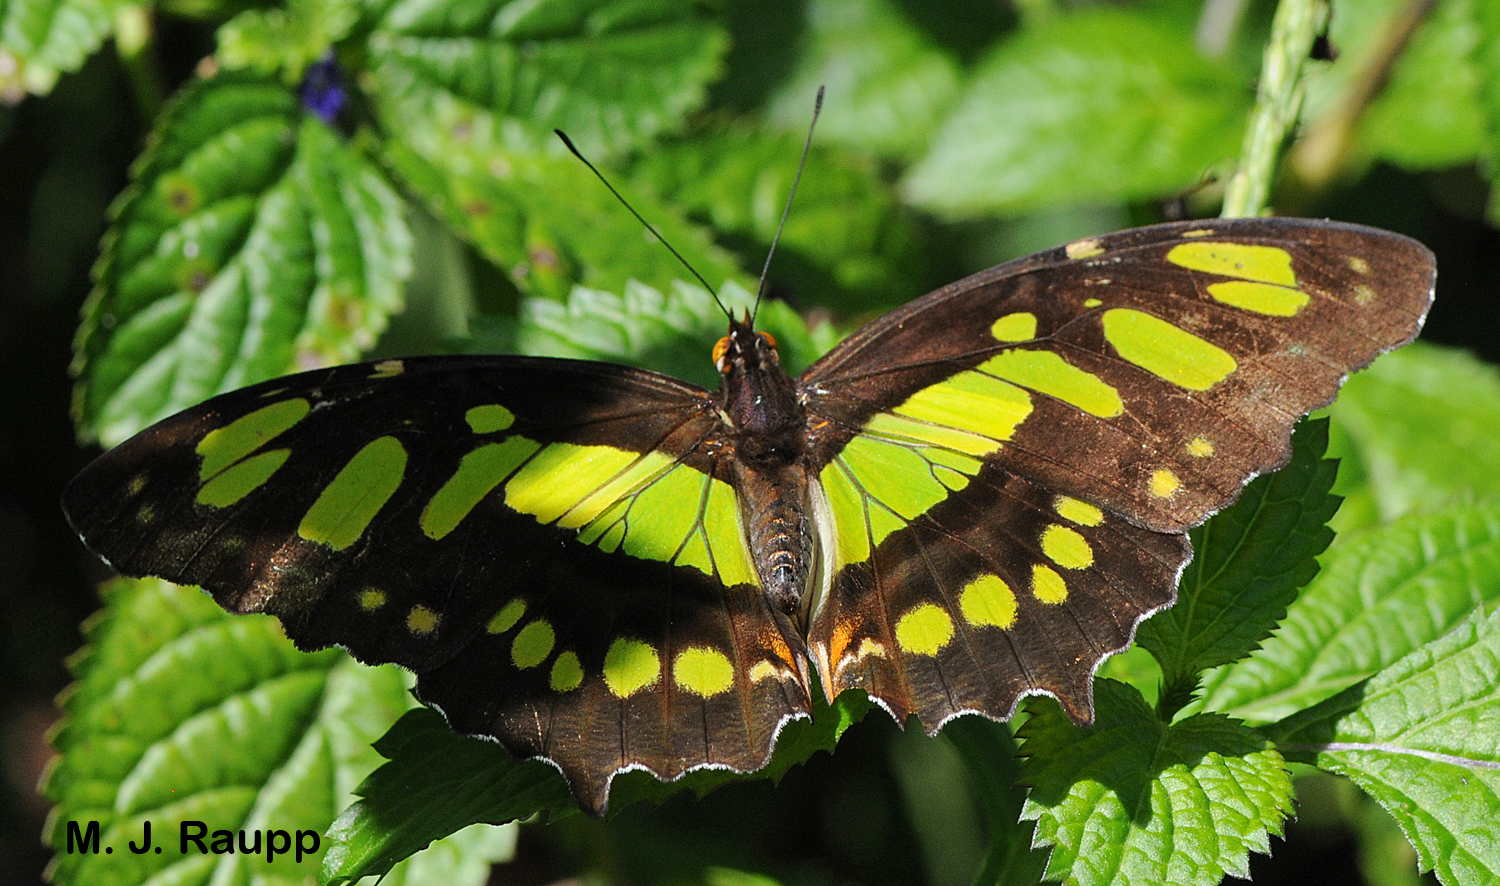 A beautiful Malachite butterfly rests in the vegetation.